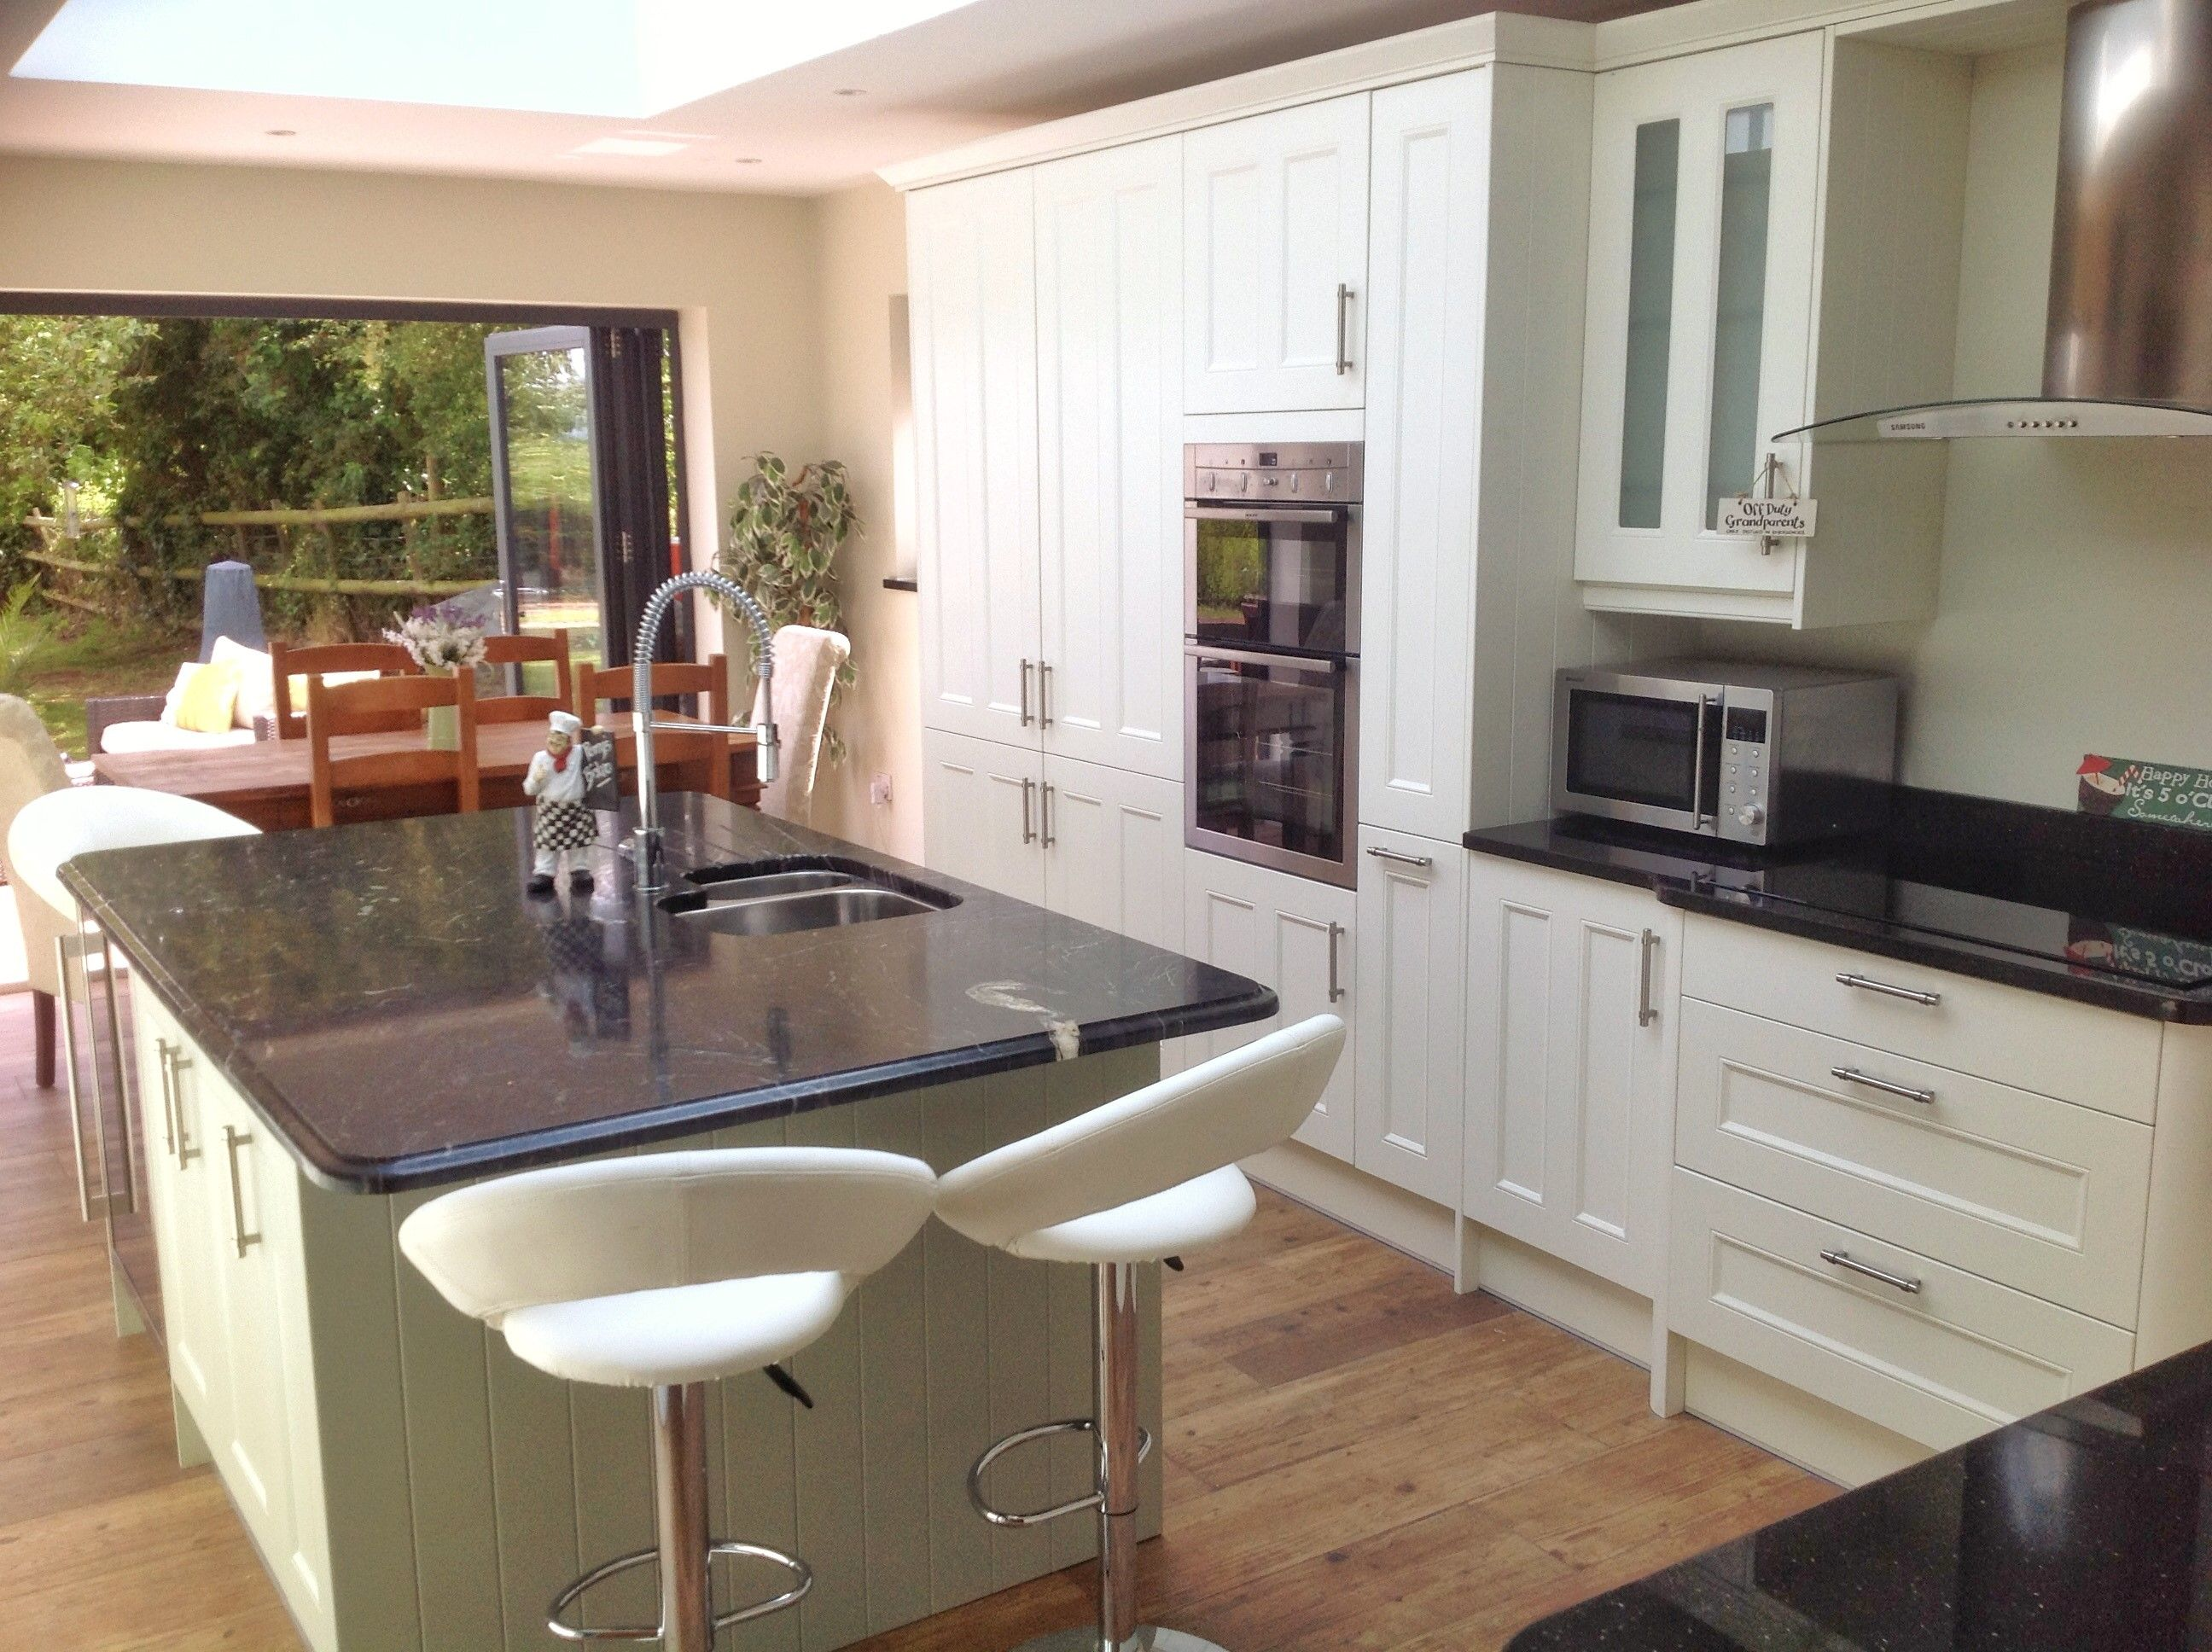 This Country Cream and Country Sage kitchen has 'summer